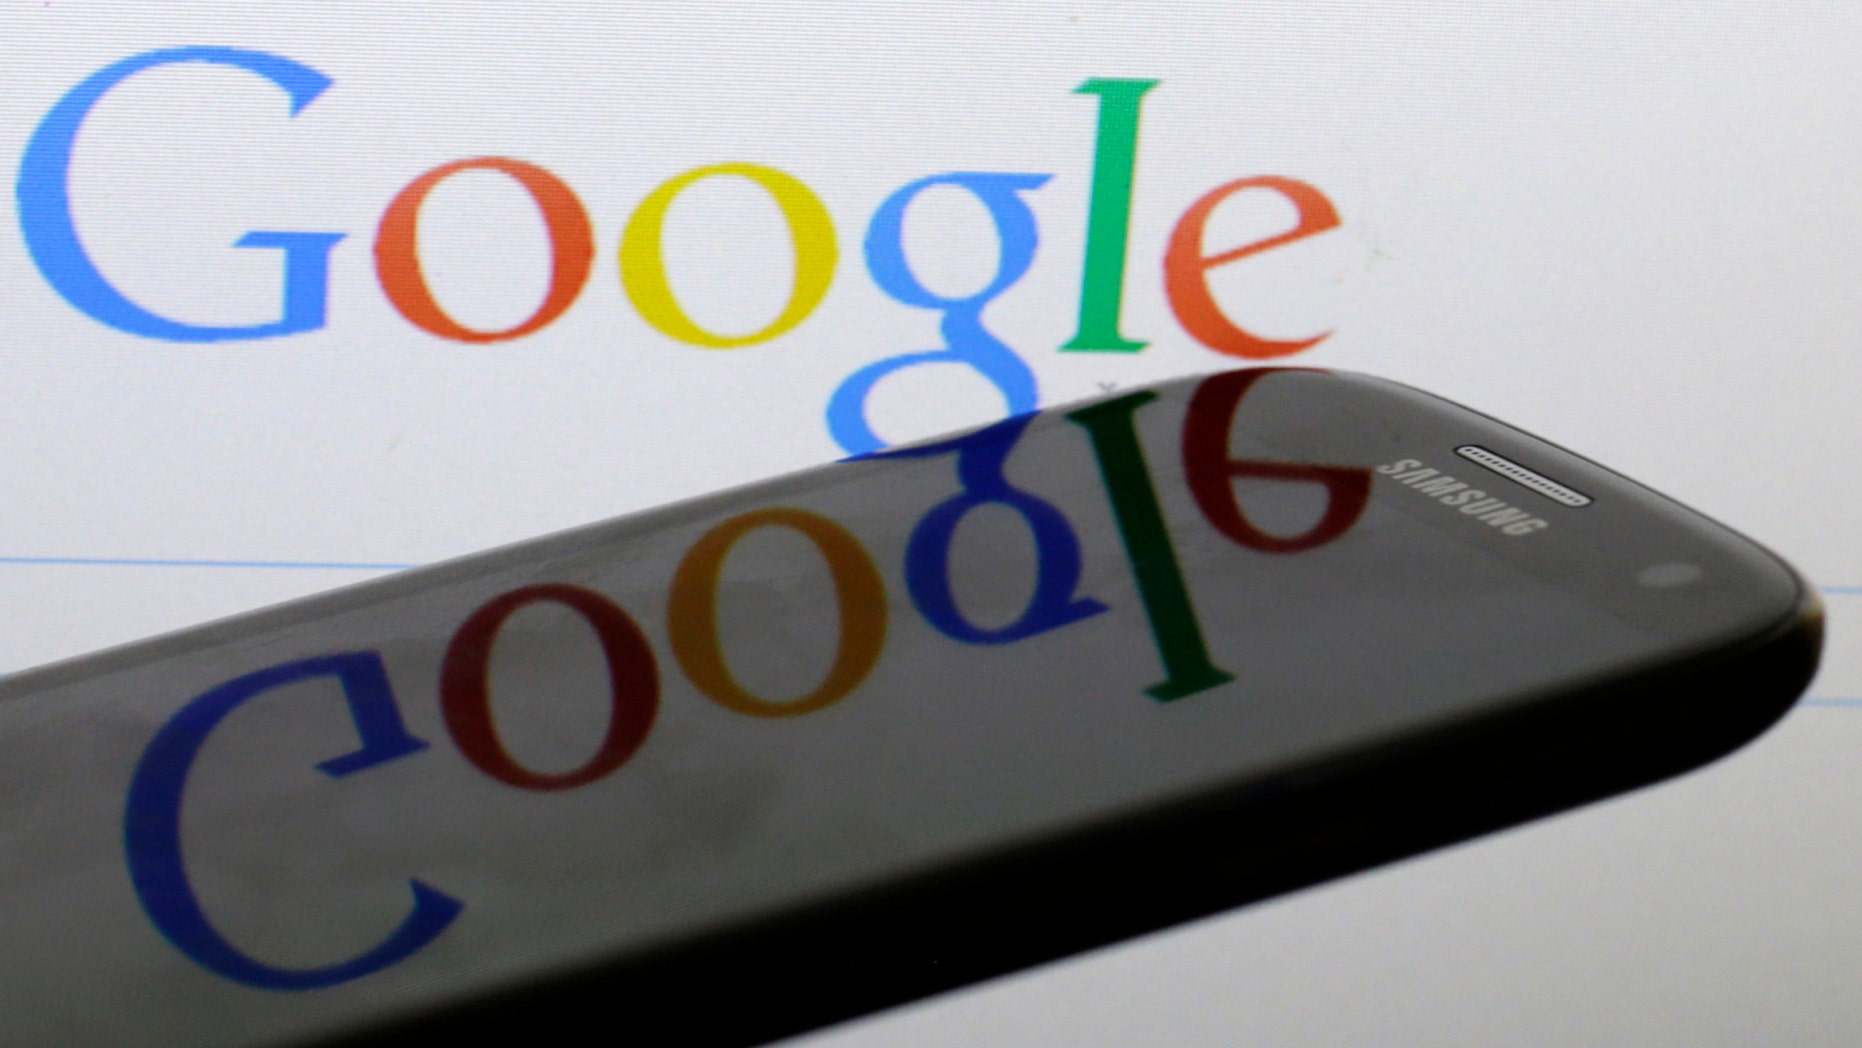 A Google logo is reflected on the screen of a Samsung Galaxy S4 smartphone in this photo illustration taken in Prague January 31, 2014. Google Inc and Samsung Electronics Co Ltd, which are frequently involved in patent infringement lawsuits but not against each other, announced on January 26, 2014 that they have reached a global patent cross-licensing agreement. Picture taken January 31.   REUTERS/David W Cerny (CZECH REPUBLIC - Tags: BUSINESS TELECOMS SCIENCE TECHNOLOGY LOGO)